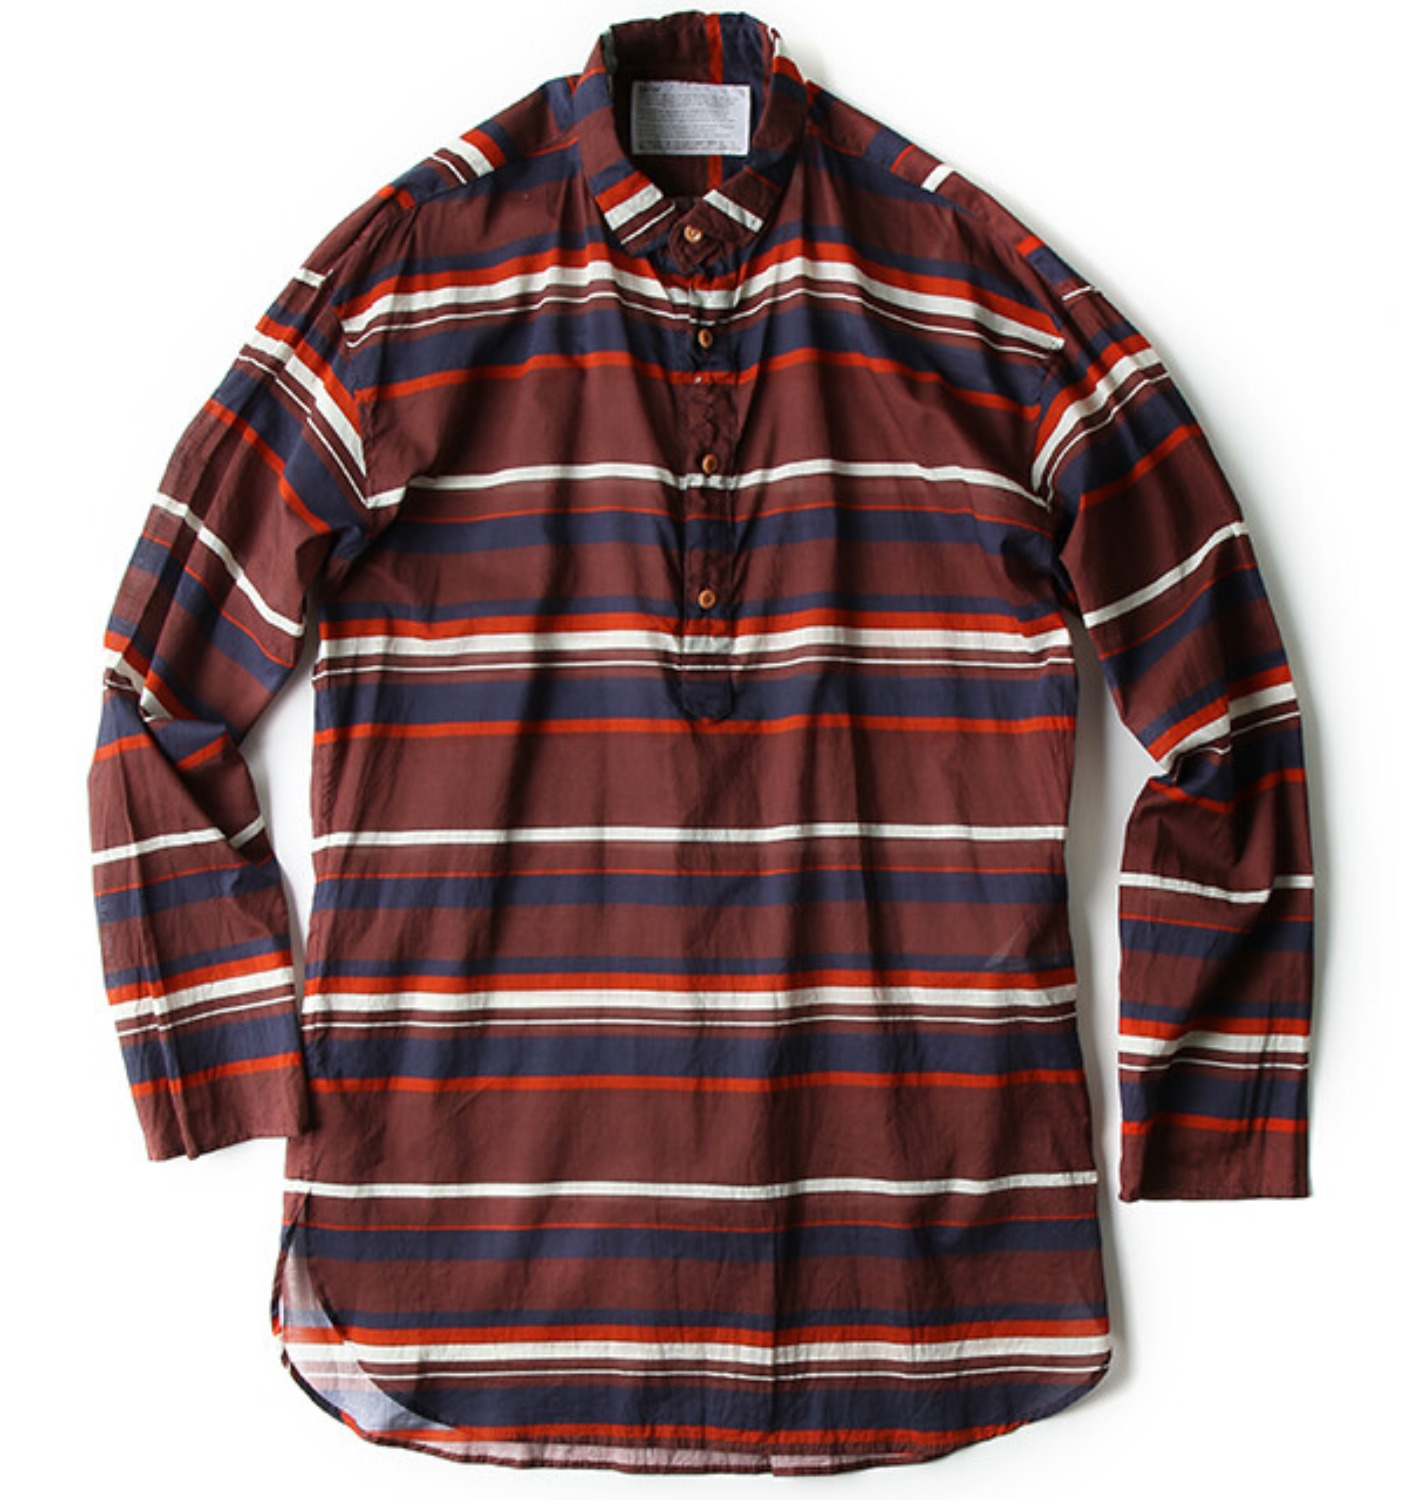 MULTI STRIPE SHIRT BORDEAUX (18SCMB12117)